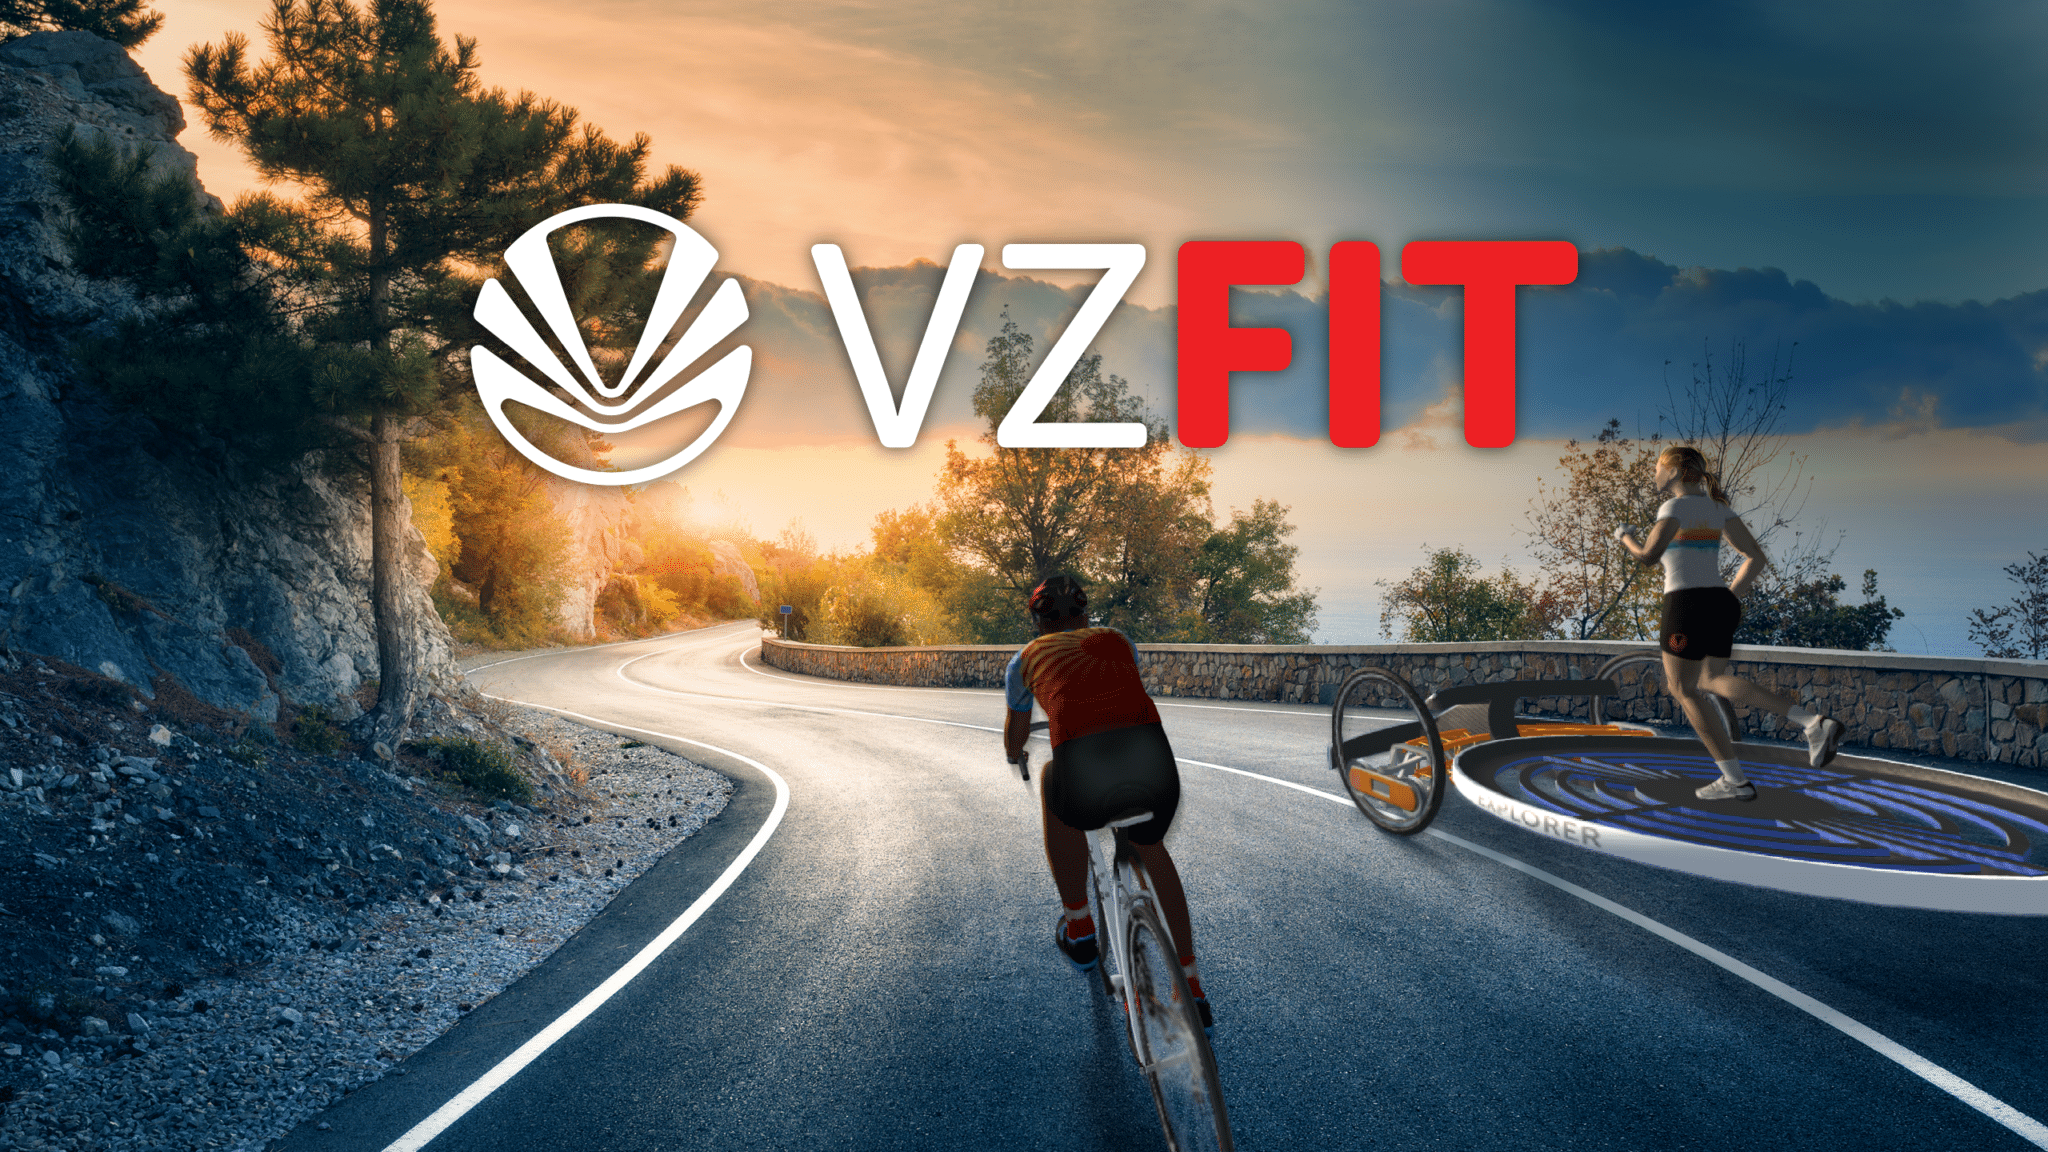 VR Cycling Simulator VZfit Hits Quest Store With Street View